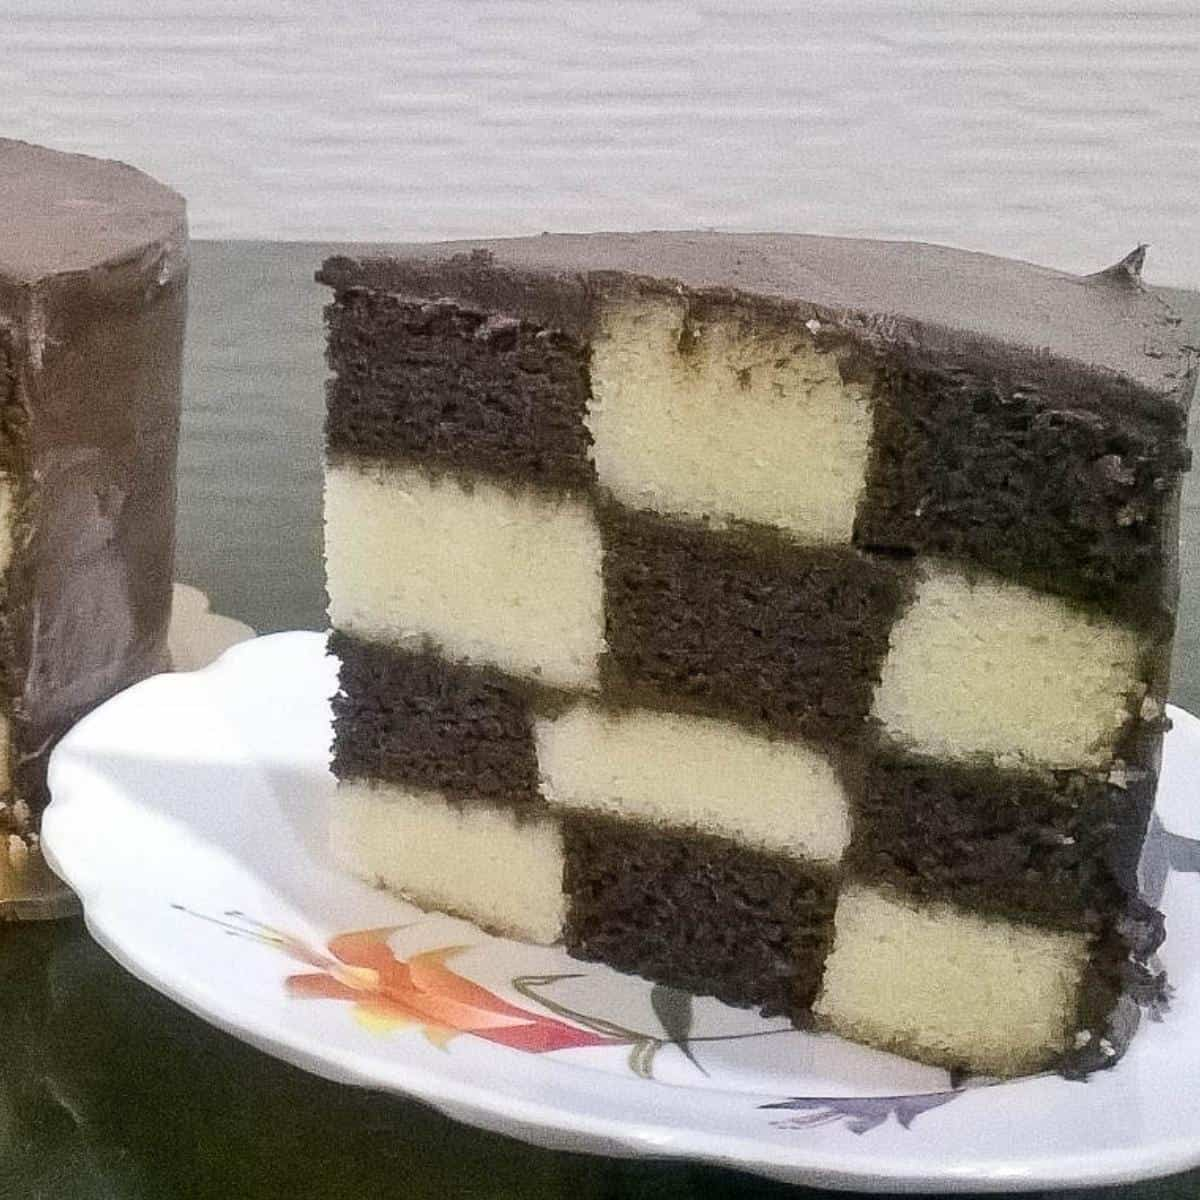 A checkerboard cake slice on a plate